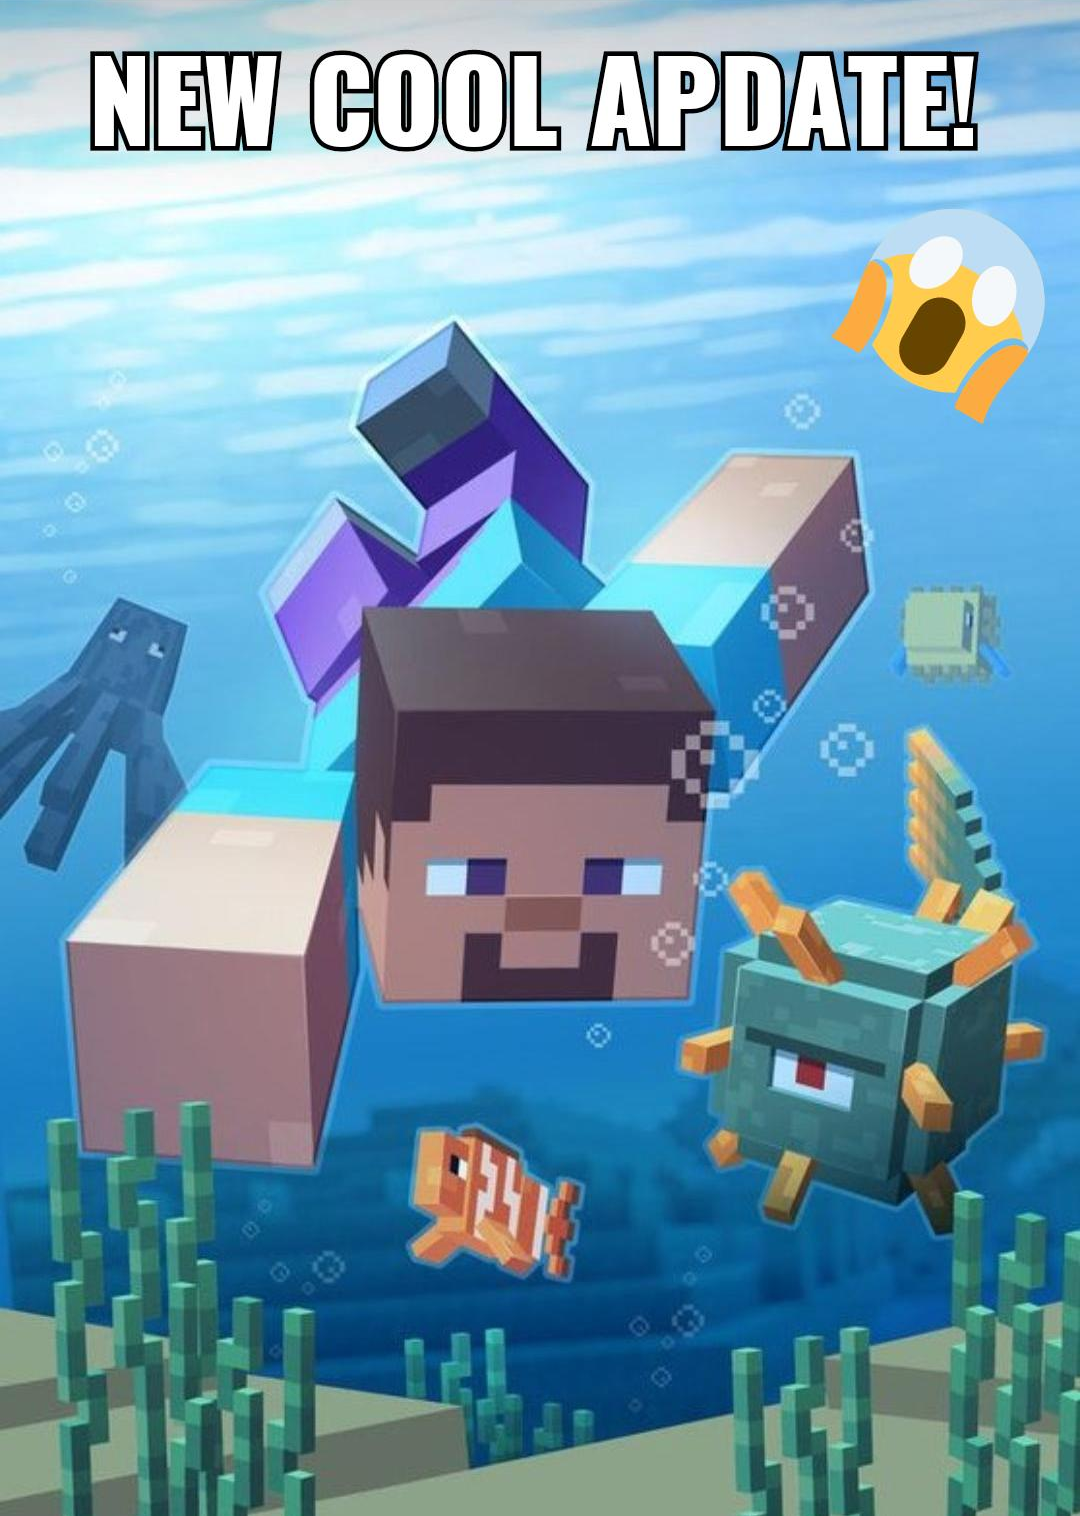 IM GONNA PLAY ALL DAY EVERY DAY !!!!! Minecraft anime